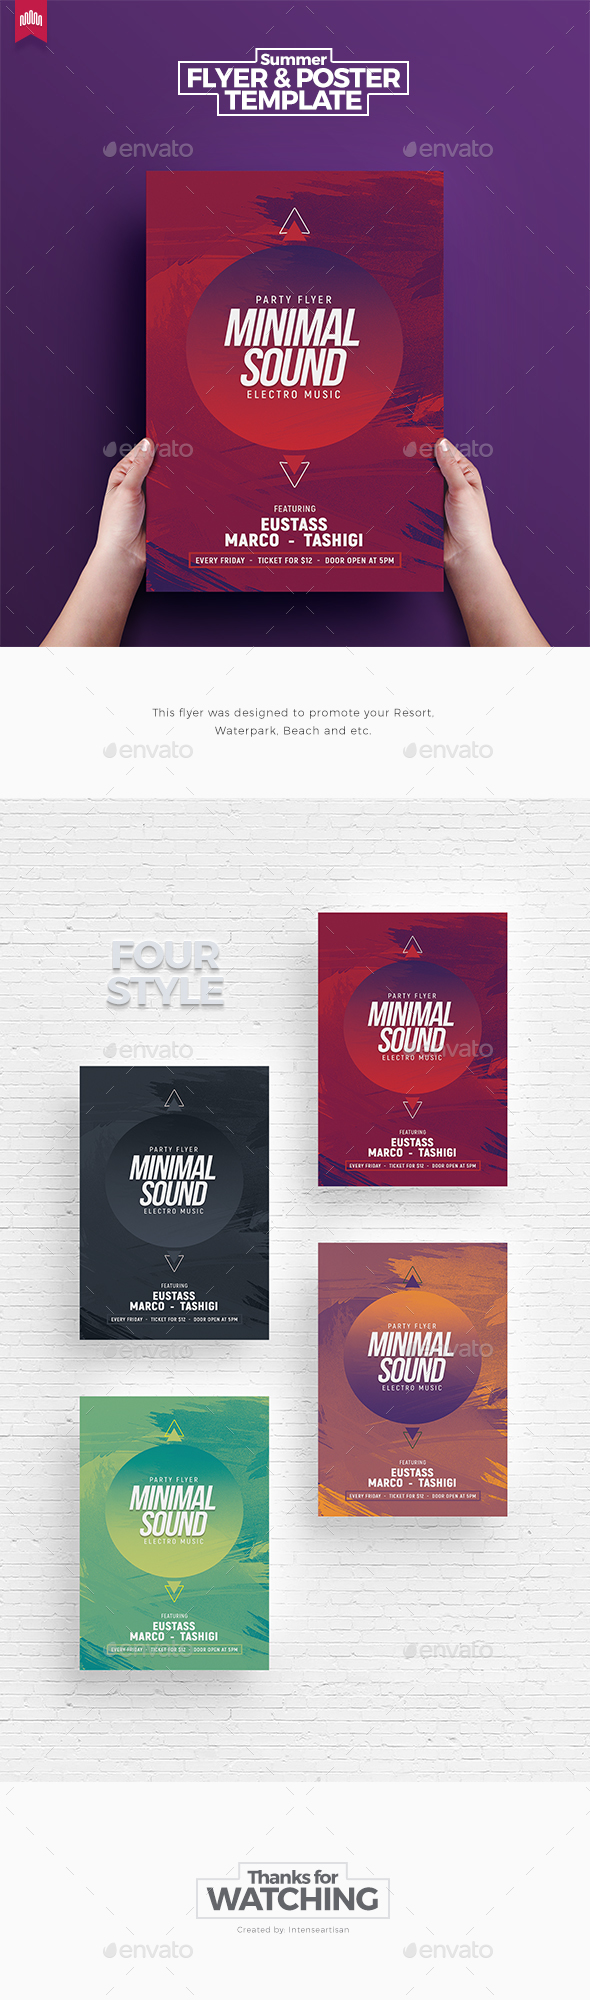 Minimal Sound V.3 - Flyer Template - Clubs & Parties Events